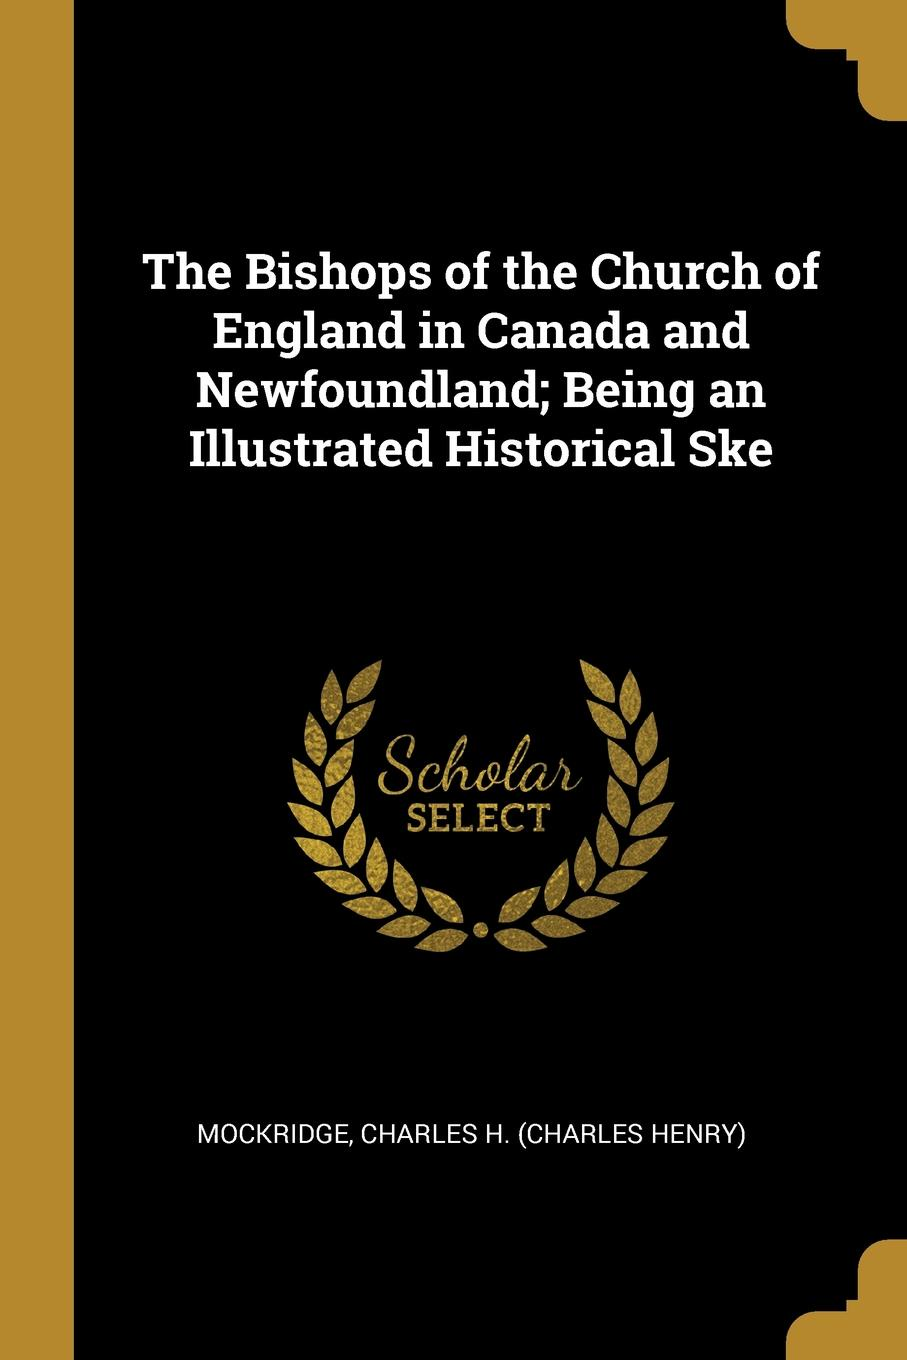 Mockridge Charles H. (Charles Henry). The Bishops of the Church of England in Canada and Newfoundland; Being an Illustrated Historical Ske